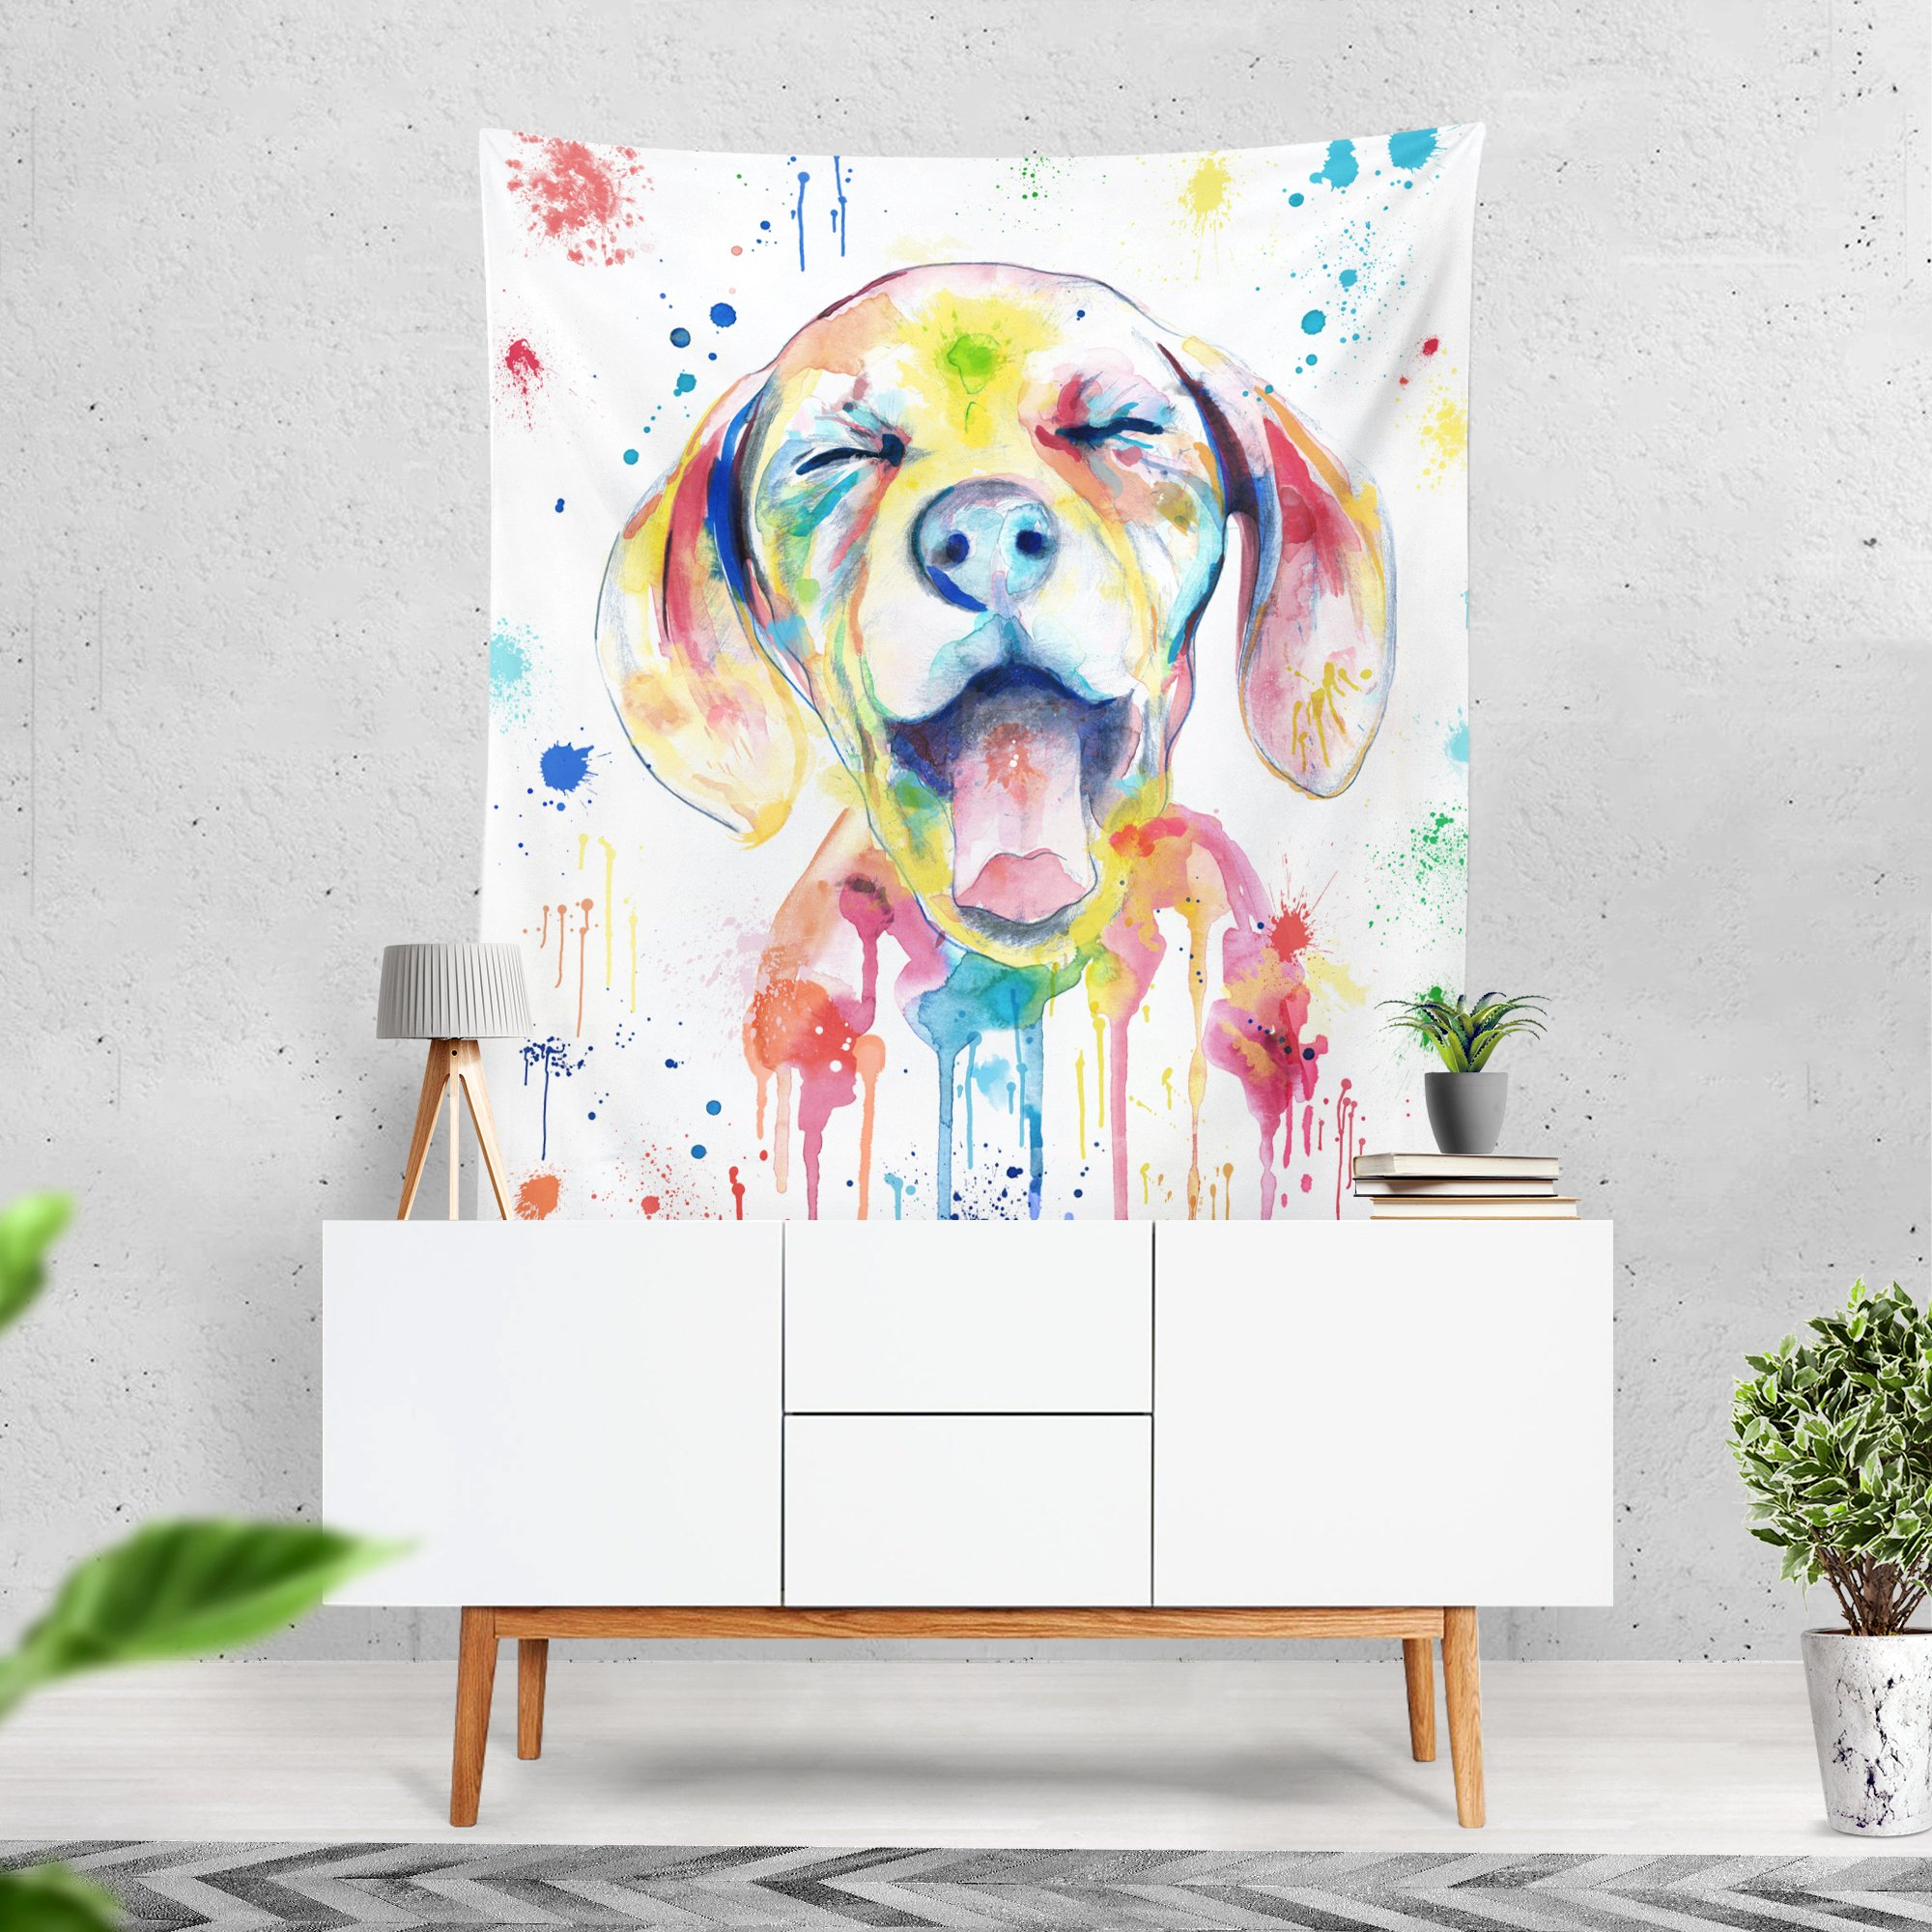 Lume.ly - Ditzy Dog Colorful Large Wall Tapestry, Exclusive Vibrant Art Decor for Bedroom Living Room Dorm Wall Decor, Wall Hanging, Beach Tapestries (50x60 inches) by Lume.ly (Image #1)